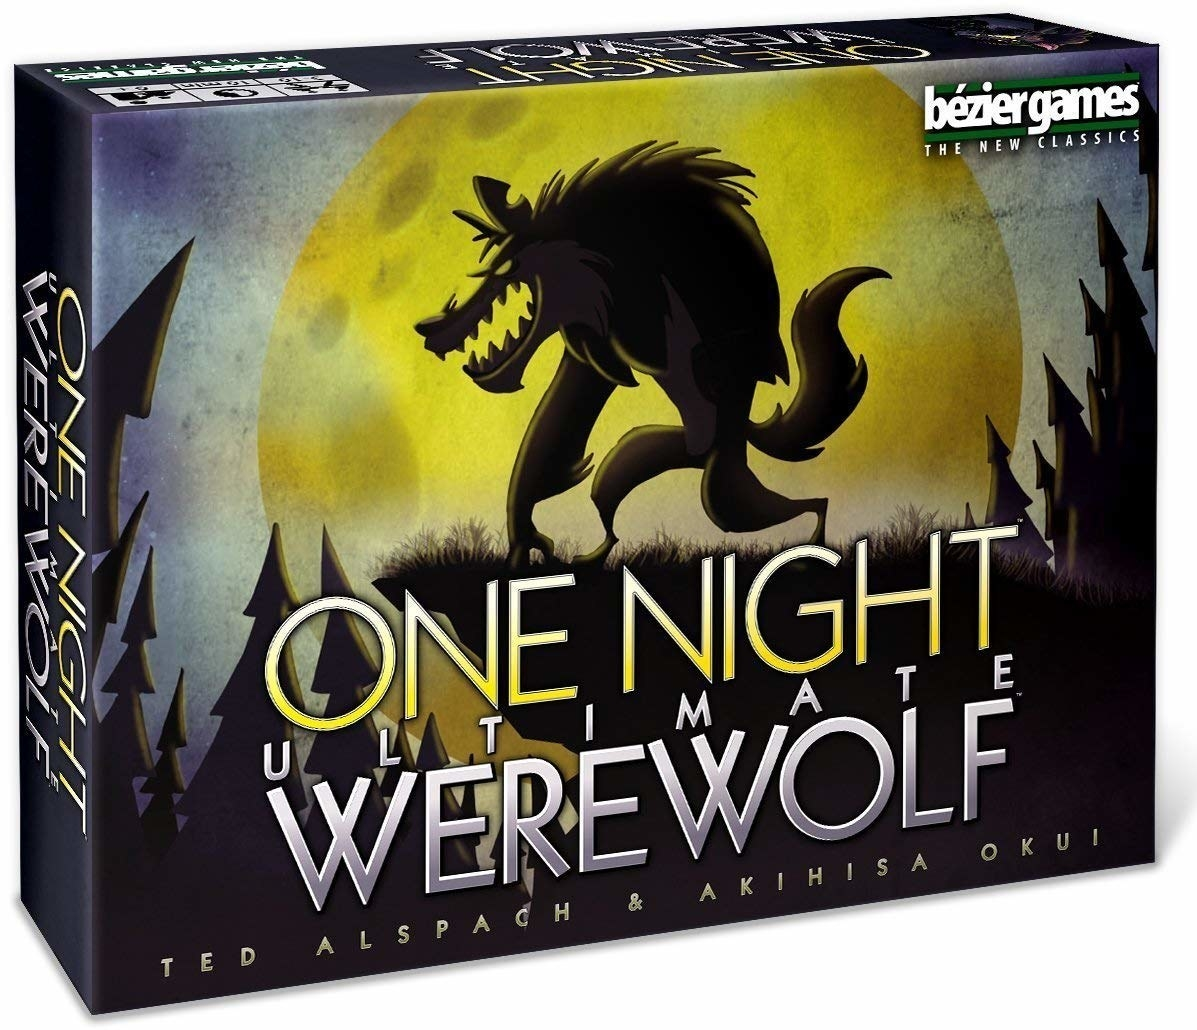 The game box front cover